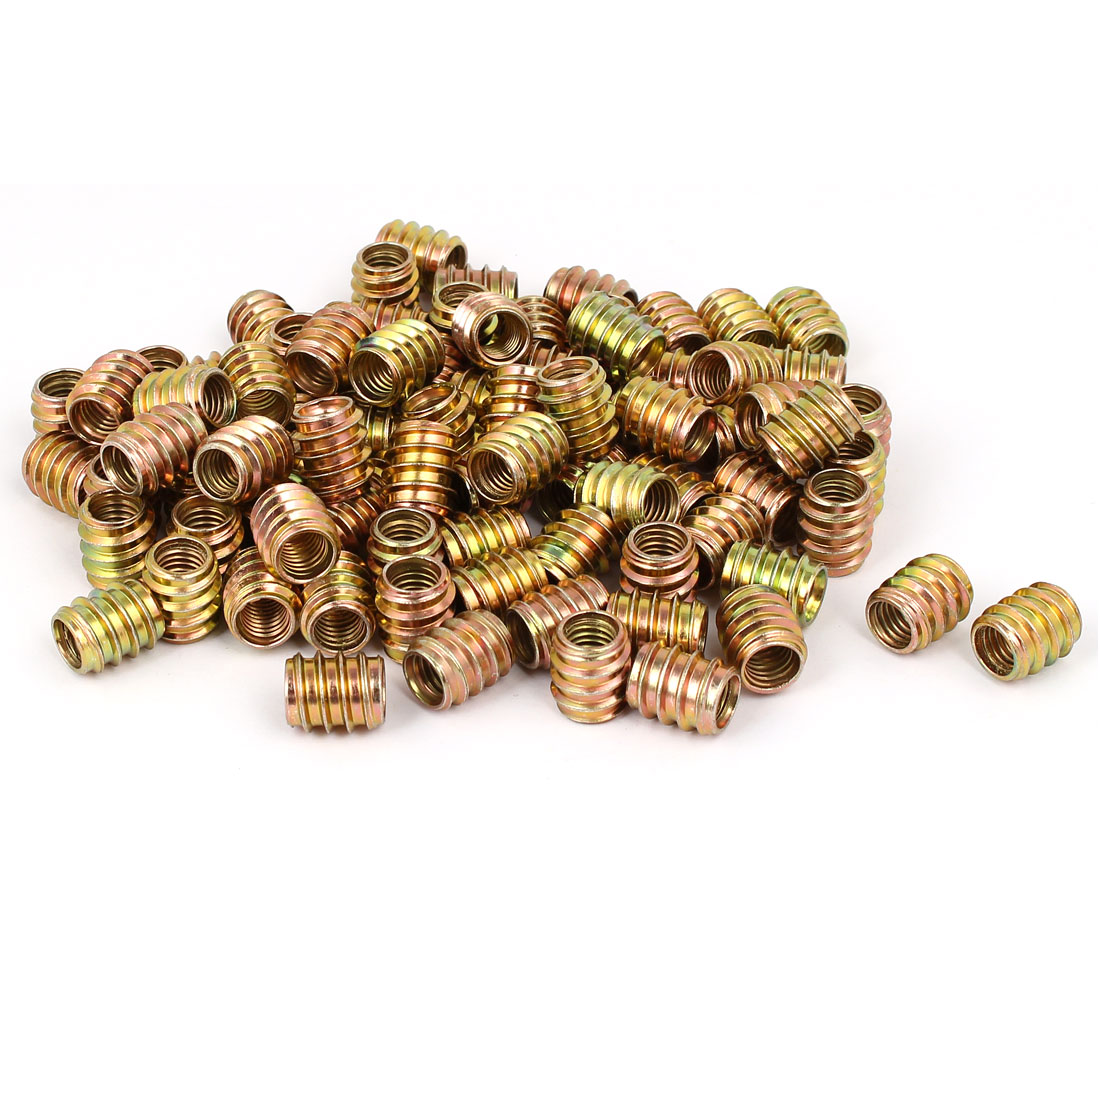 Wood Furniture Insert Screw E-Nut Bronze Tone M8 x 15mm 100pcs